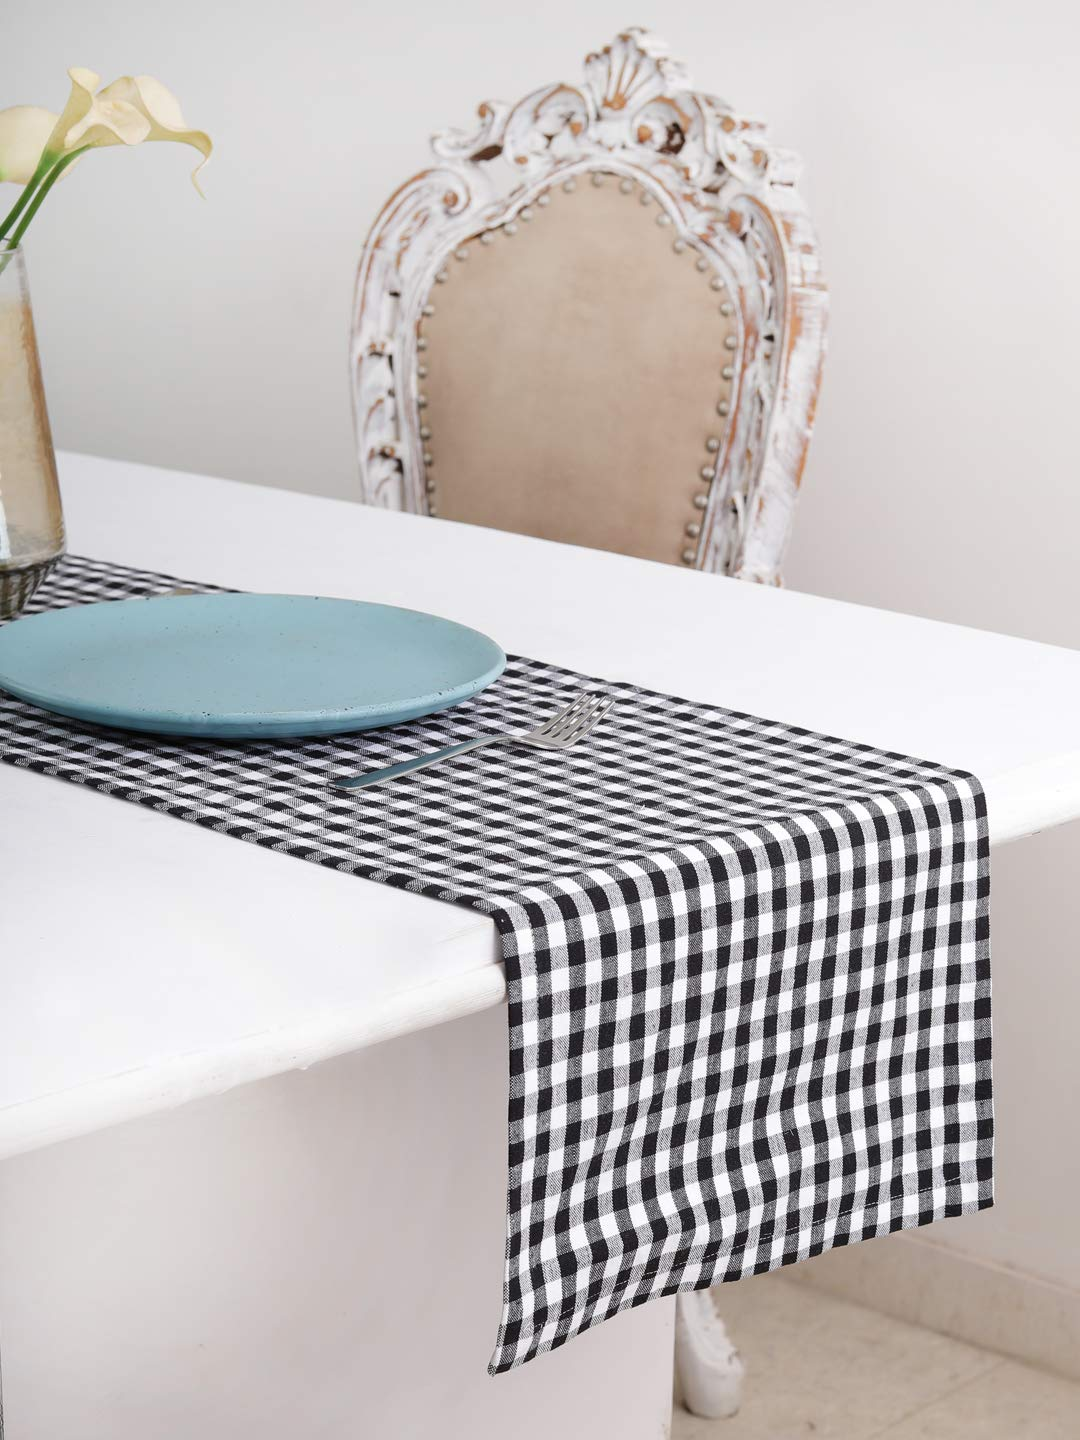 Cotton Table Runner (13 X 72 Inches), Black & White Check - 1'' Hemmed With Mitered Corner,Perfect For All Seasons And Holidays